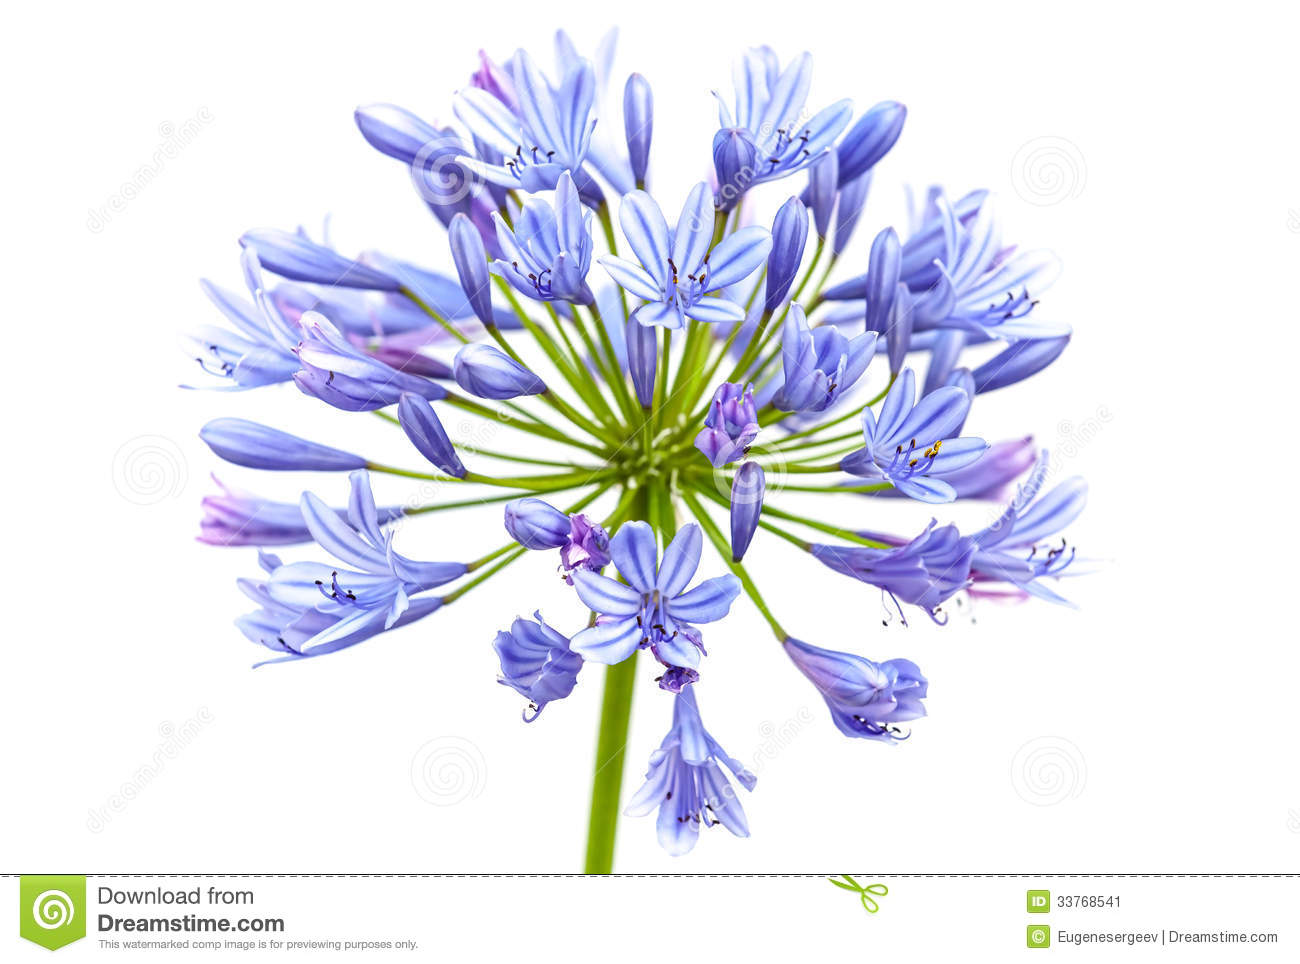 Agapanthus clipart #14, Download drawings